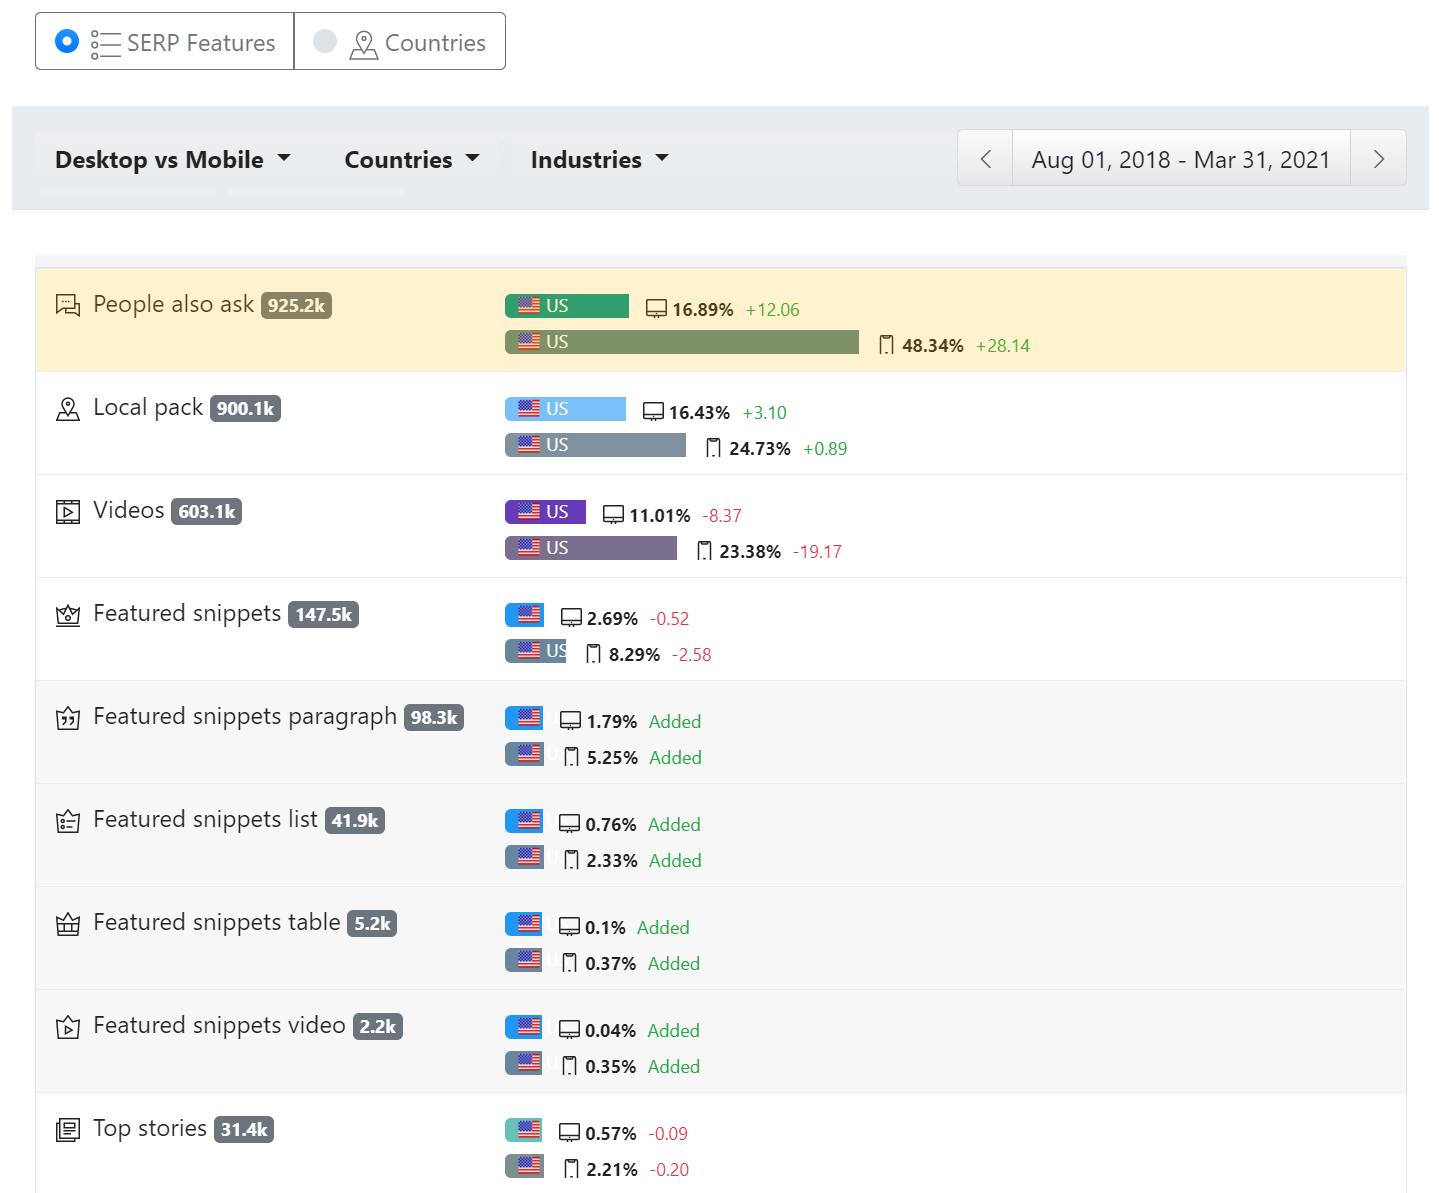 Screenshot from Advanced Web Ranking's SERP Features Tool showing the evolutions of SERP Features in Google.